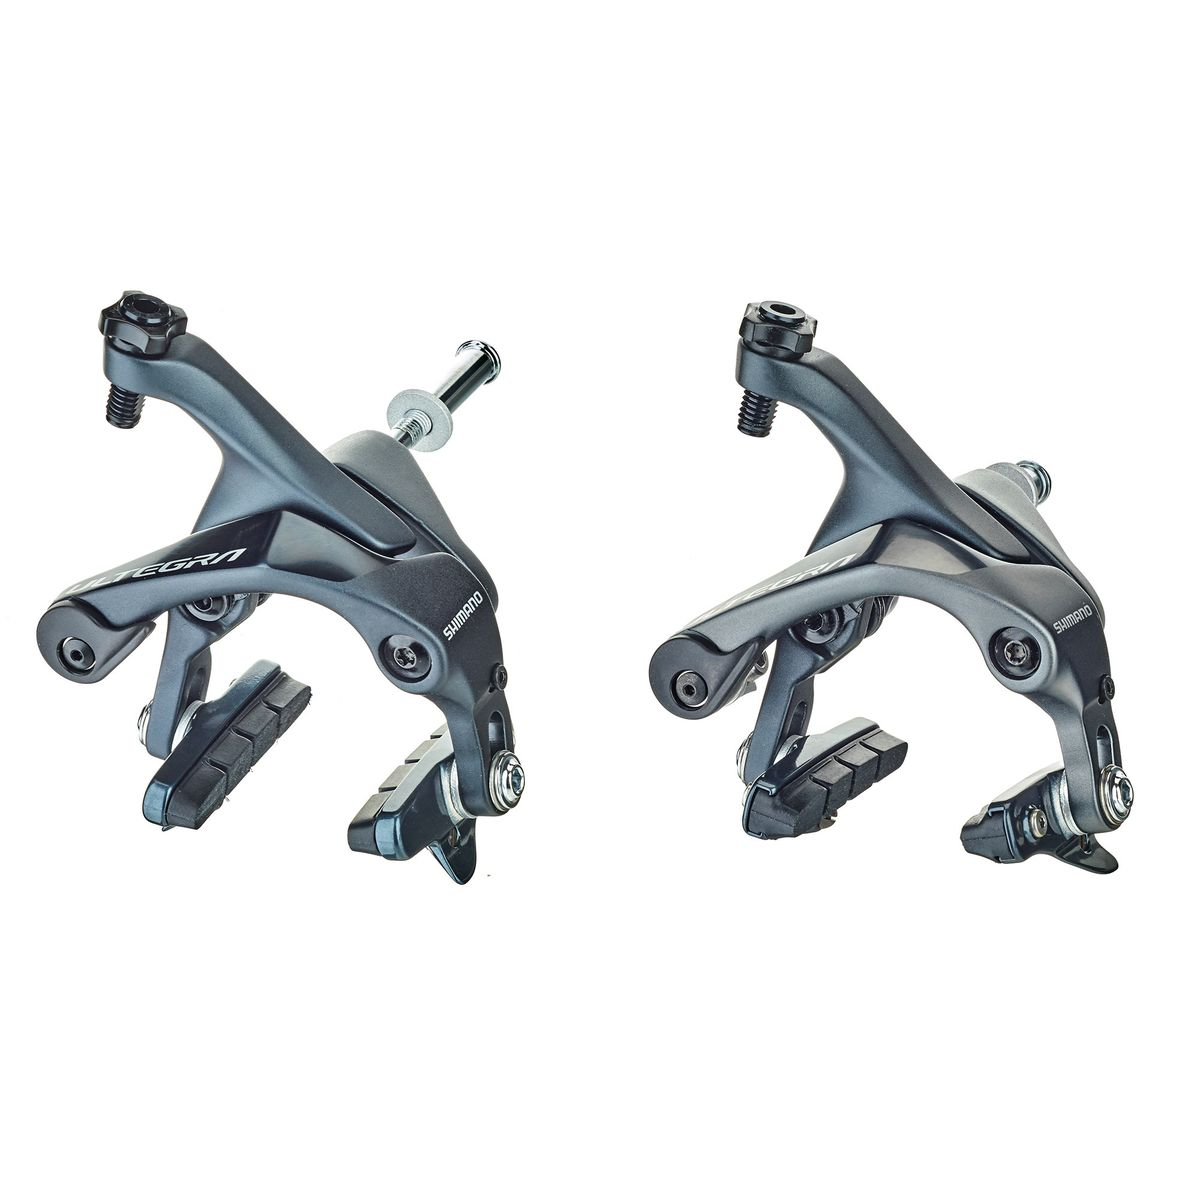 Road Brand New in Box Shimano Ultegra BR-R8000 Caliper Brake Set Front /& Rear